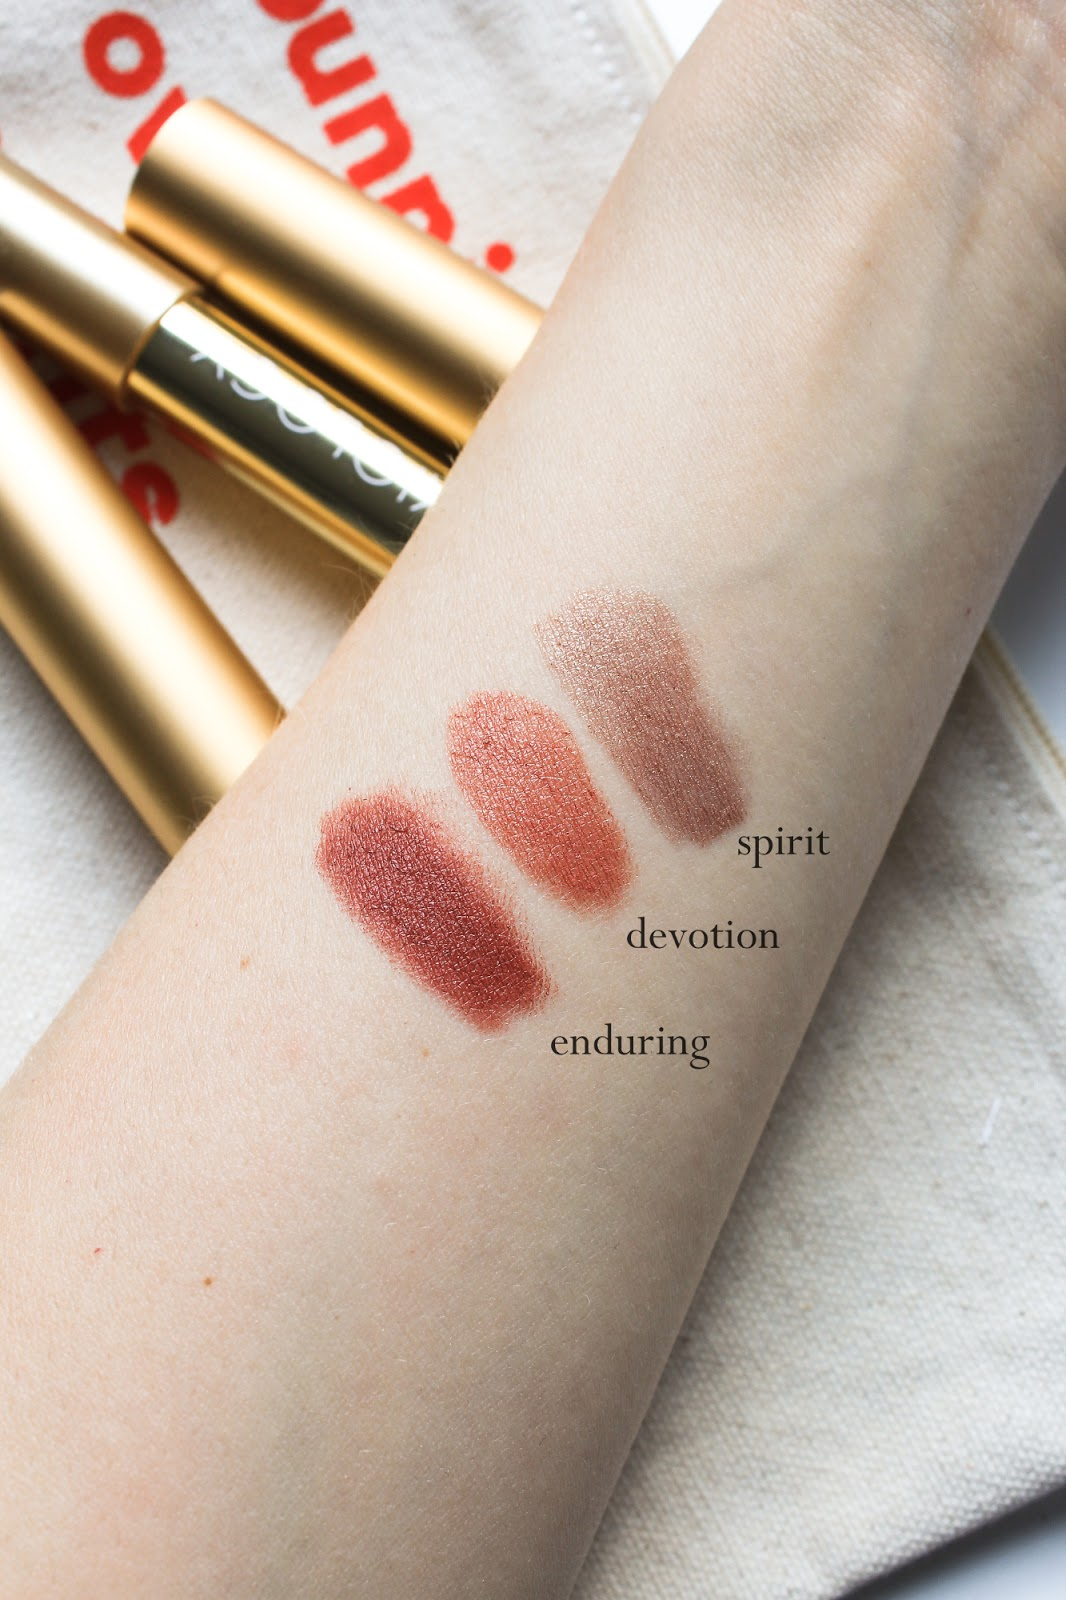 Axiology Limited Edition Makeup Discovery Spring Lip Collections Beauty Heroes. Vegan, palm oil free. Spirit Sheer Balm Lipstick, Devotion Soft Cream Lipstick, Enduring Lip Crayon swatches